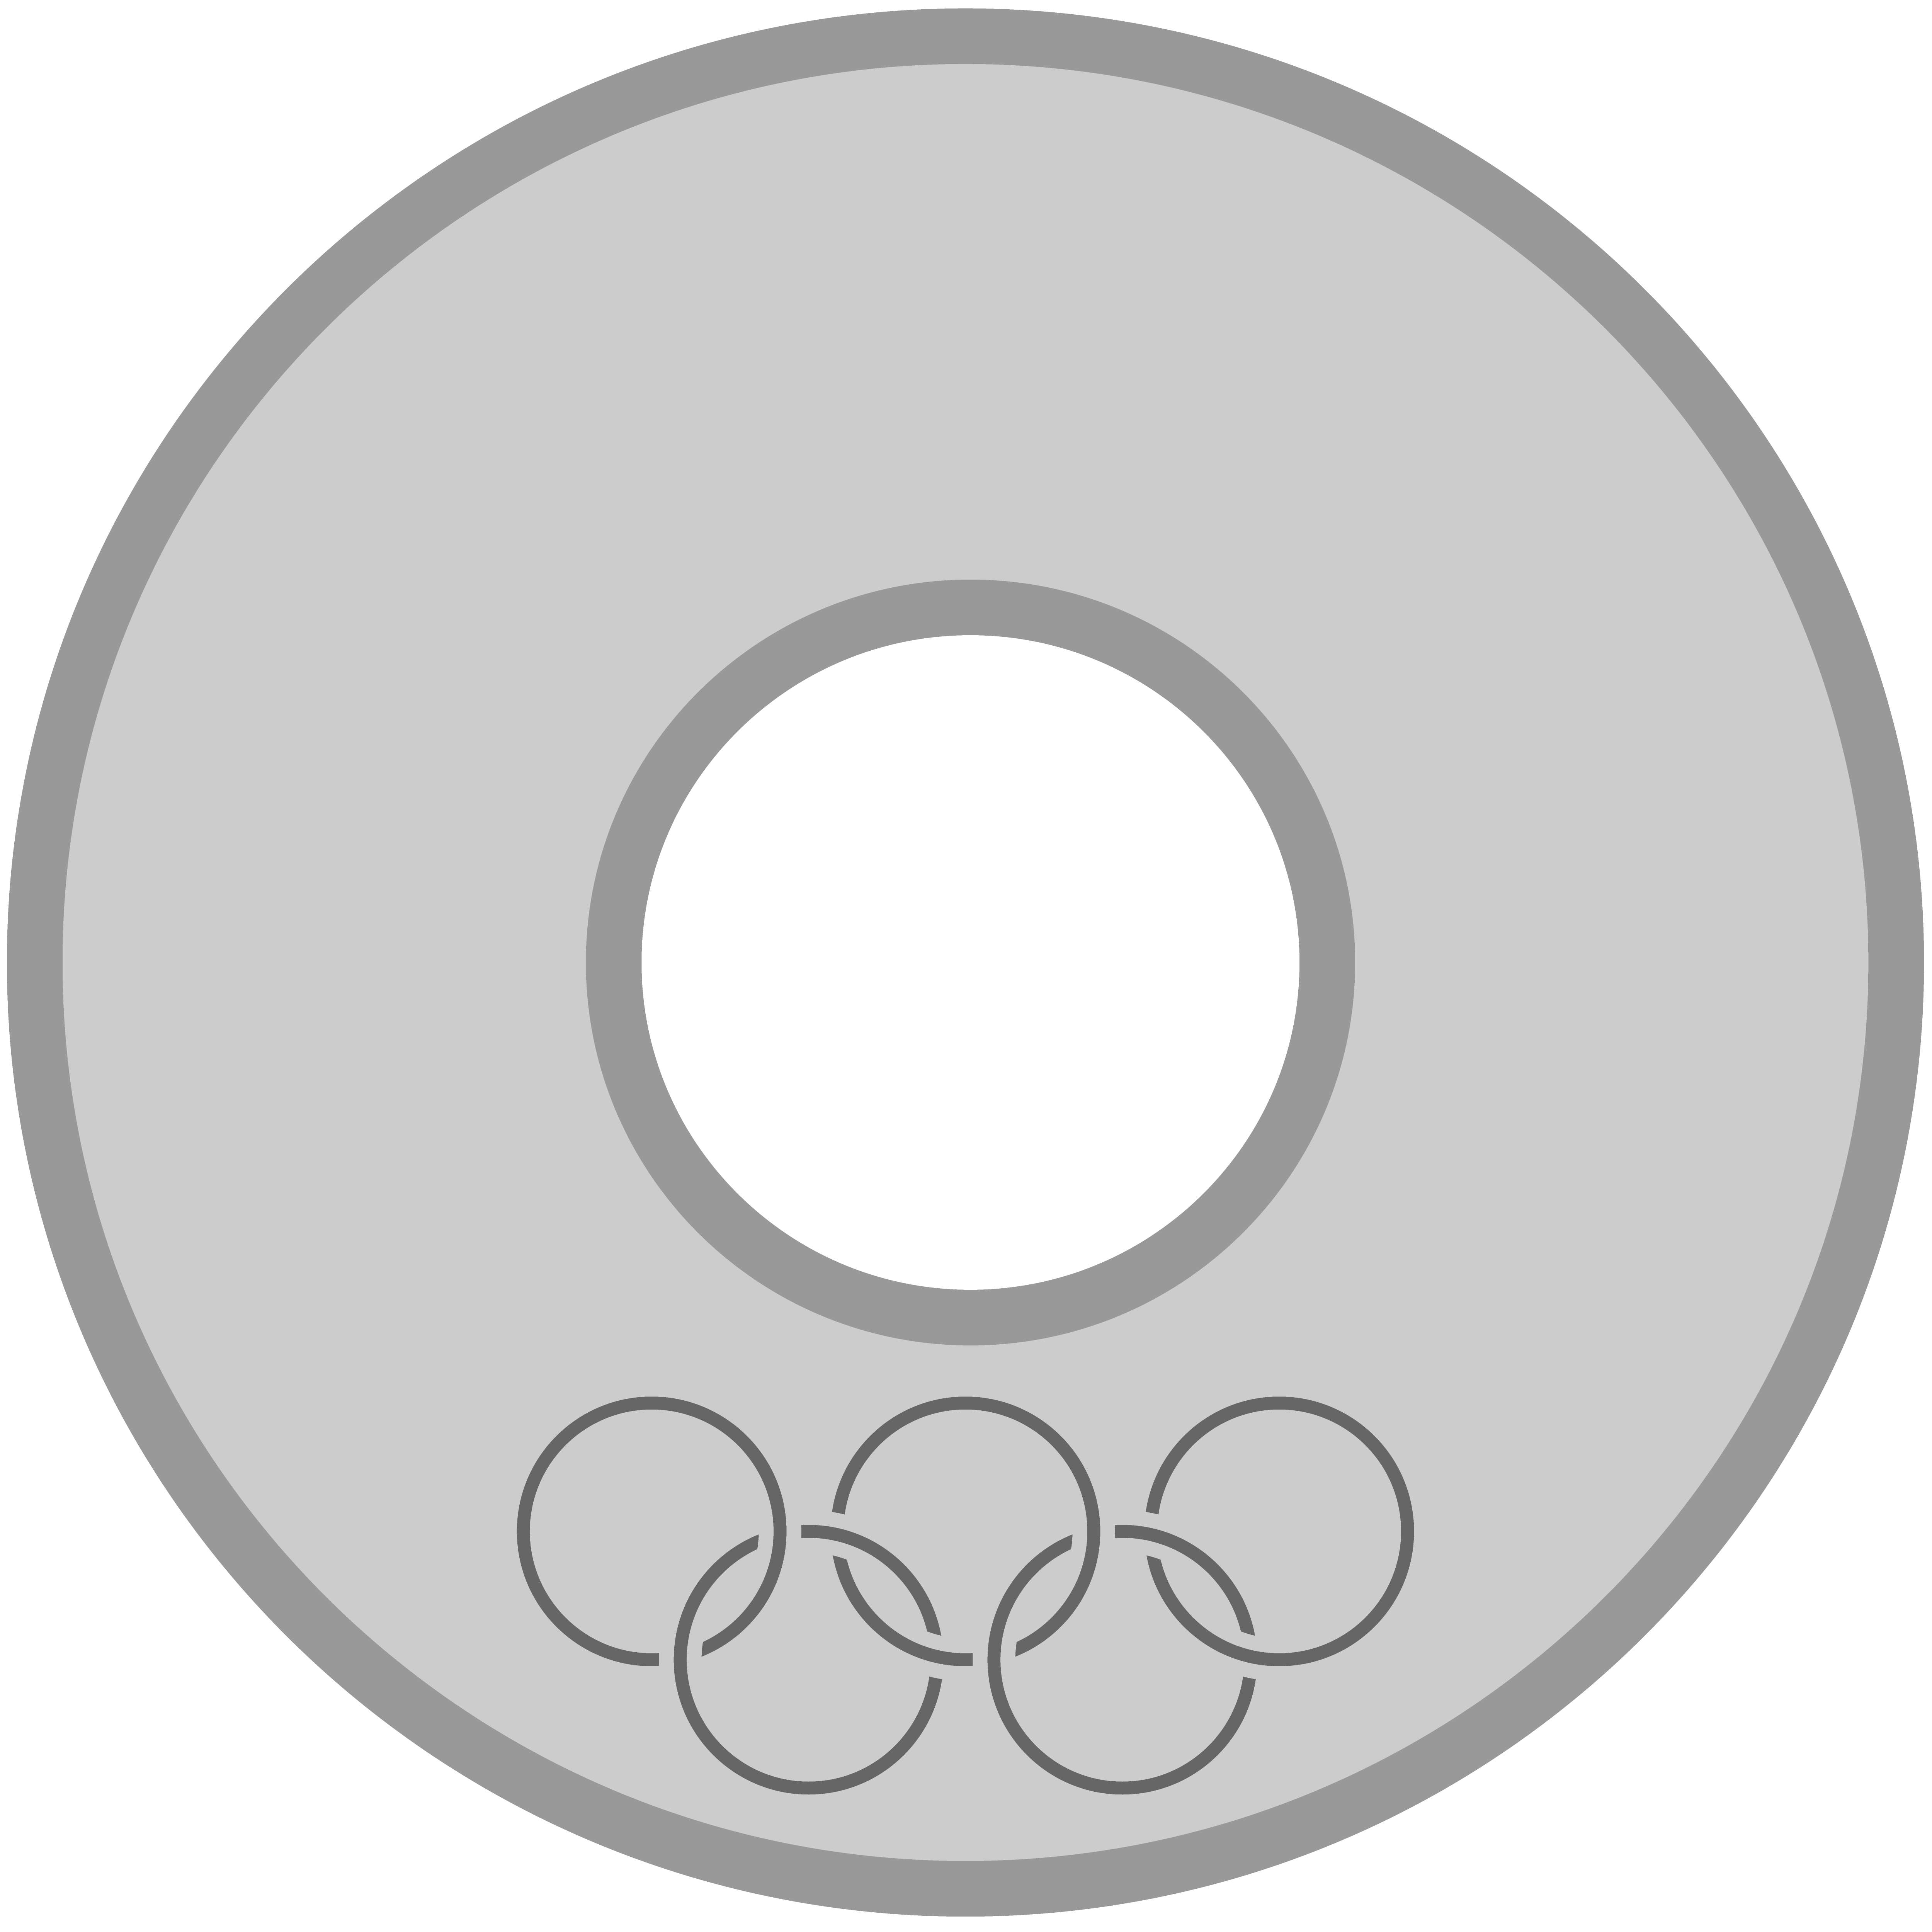 Olympic Silver Medal Png